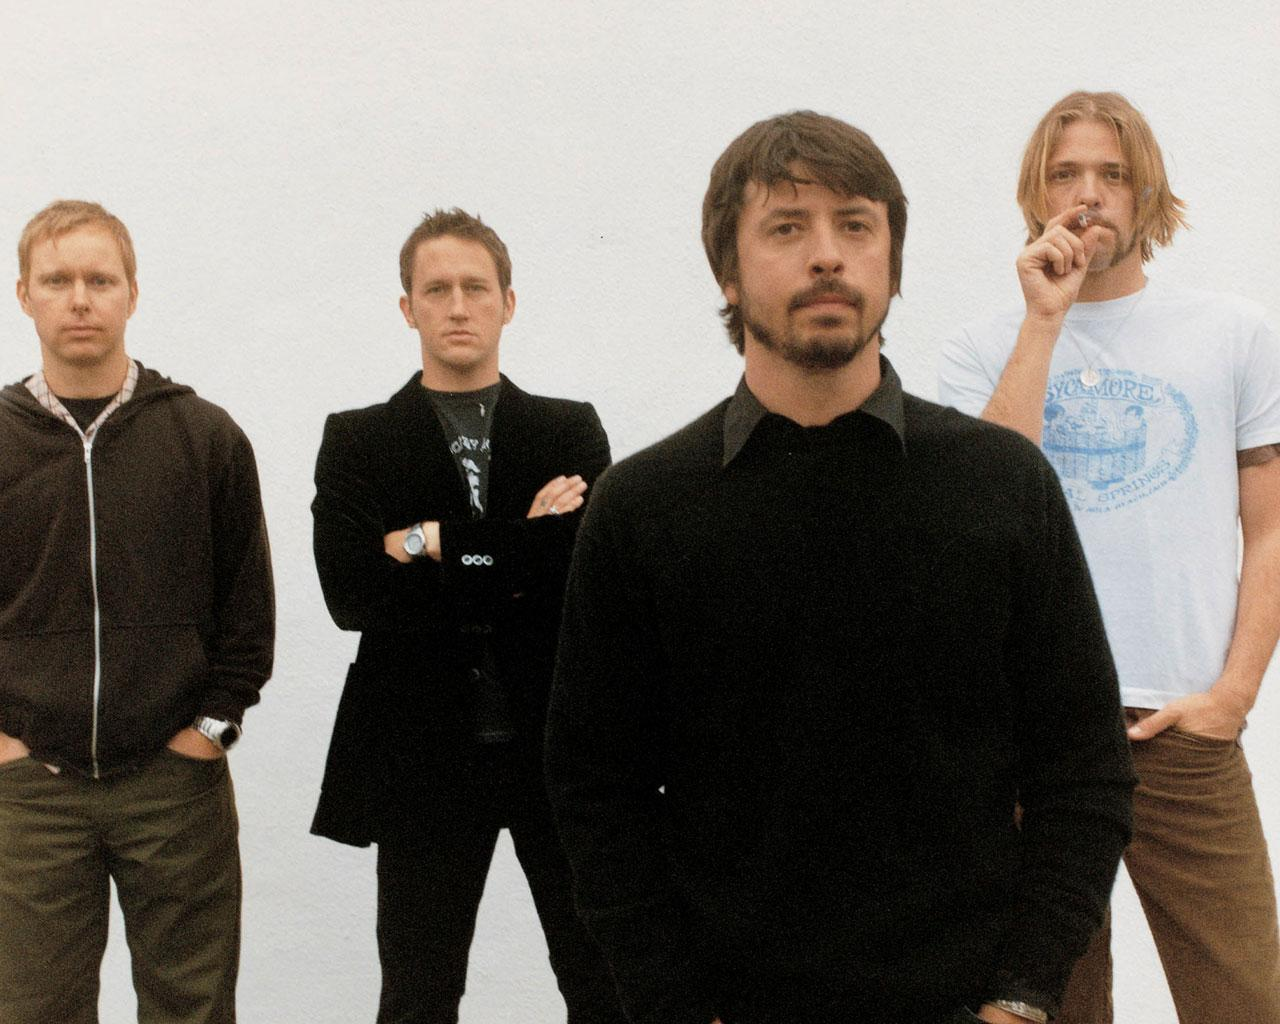 Best band - Foo Fighters 1280x1024 Wallpaper #1